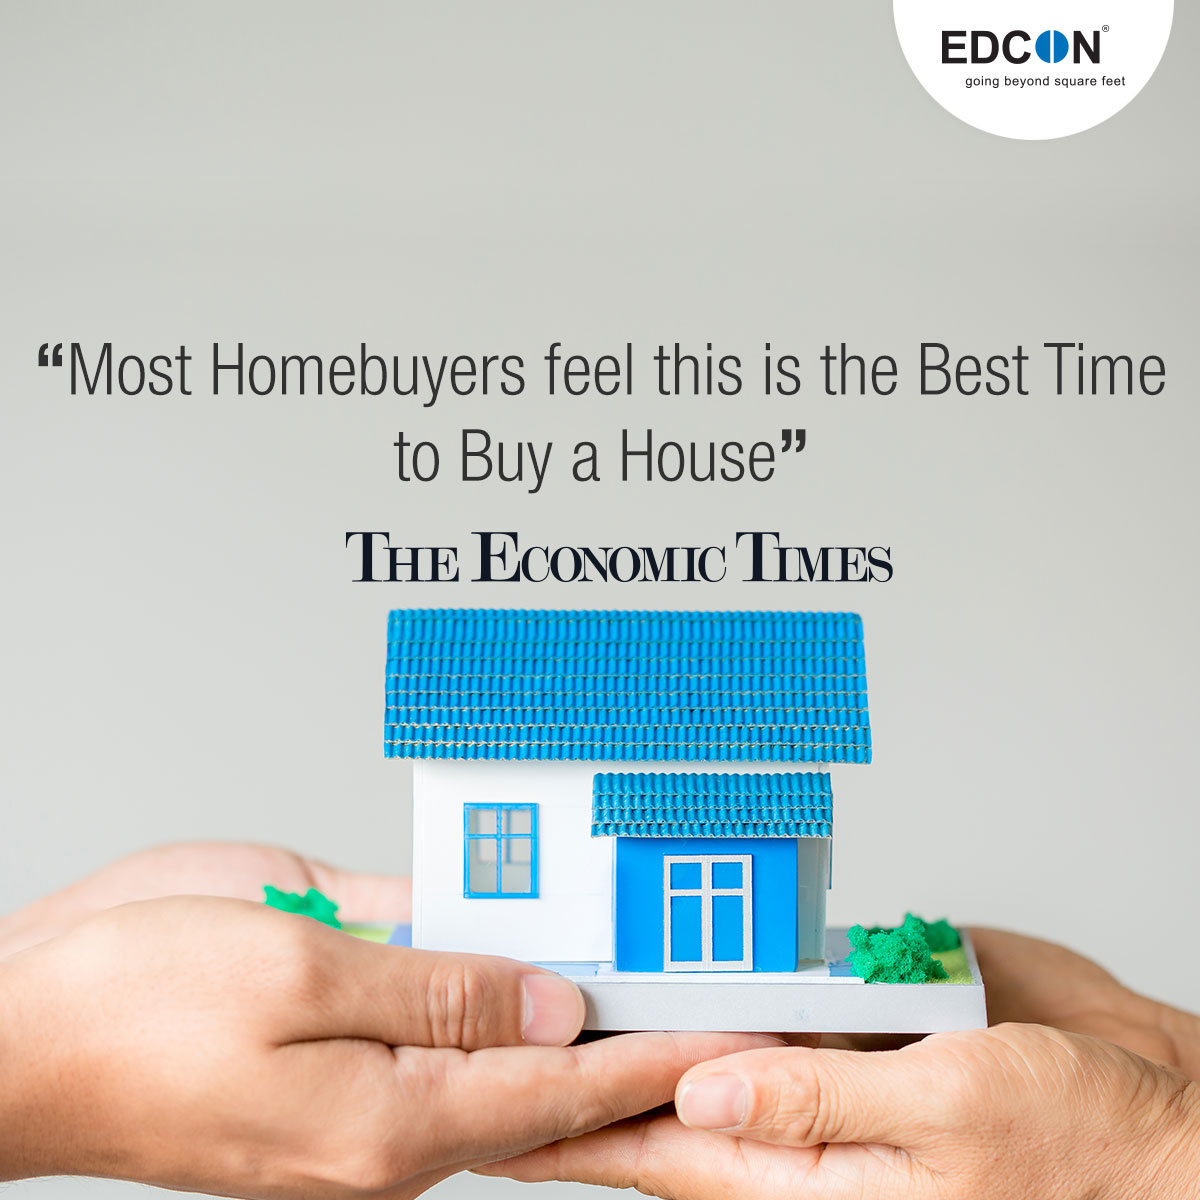 Most Homebuyers feel this is the best time to buy a house